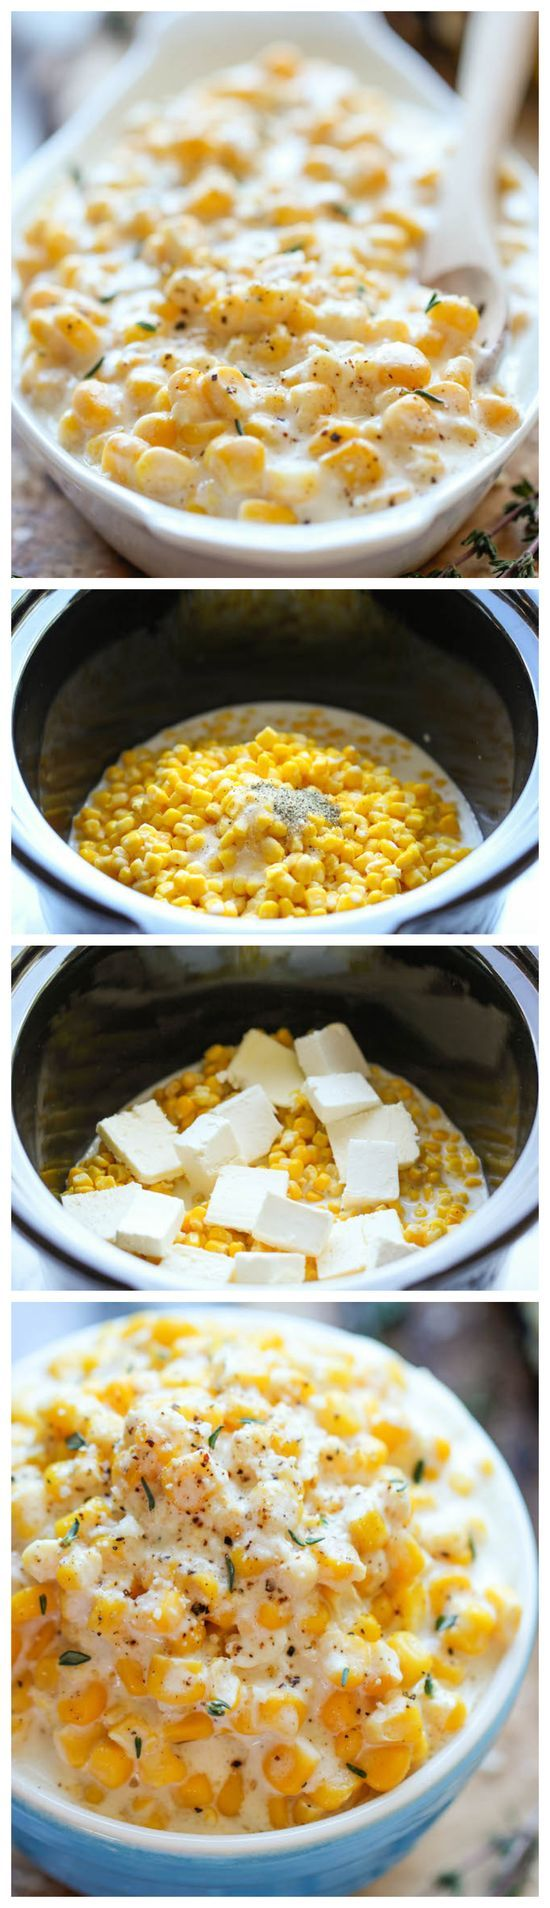 Sweet corn and cream